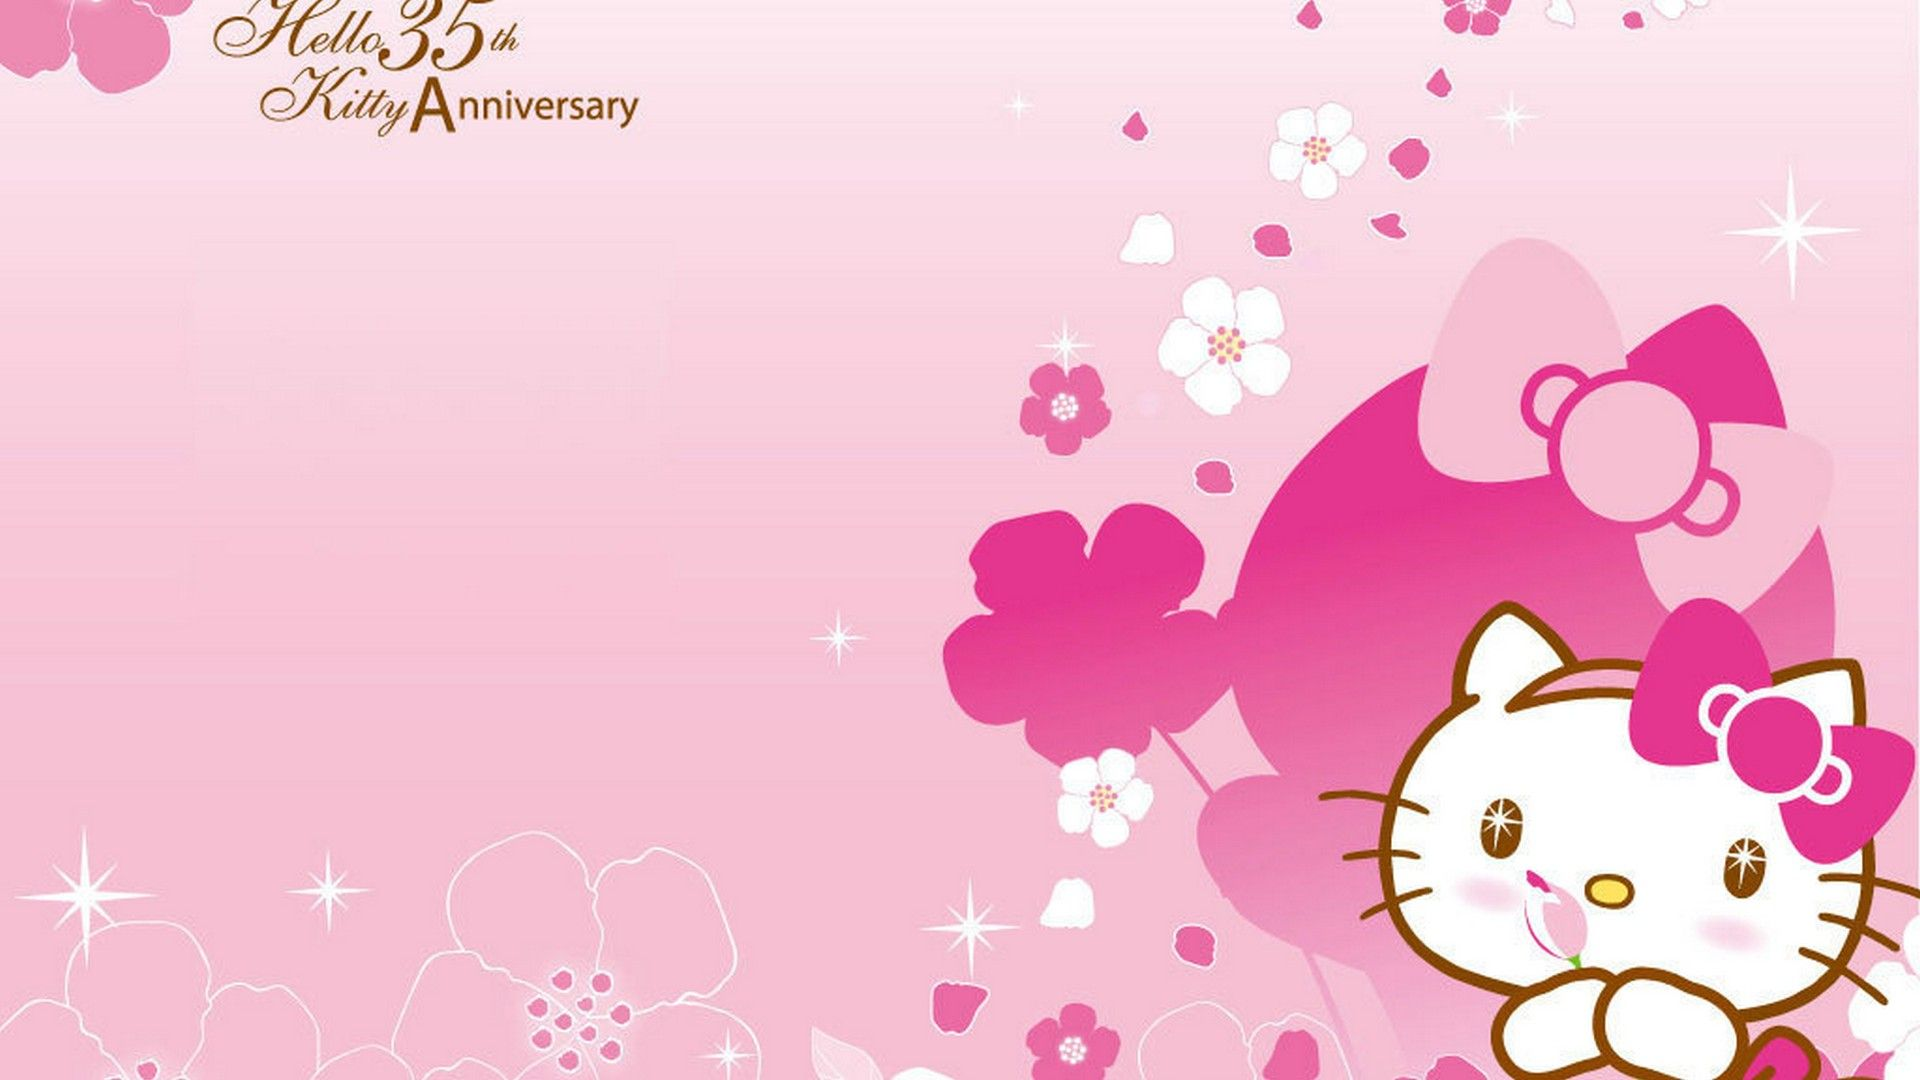 Hello Kitty Desktop Backgrounds Hd Best Hd Wallpapers Hello Kitty Backgrounds Hello Kitty Wallpaper Hello Kitty Wallpaper Hd